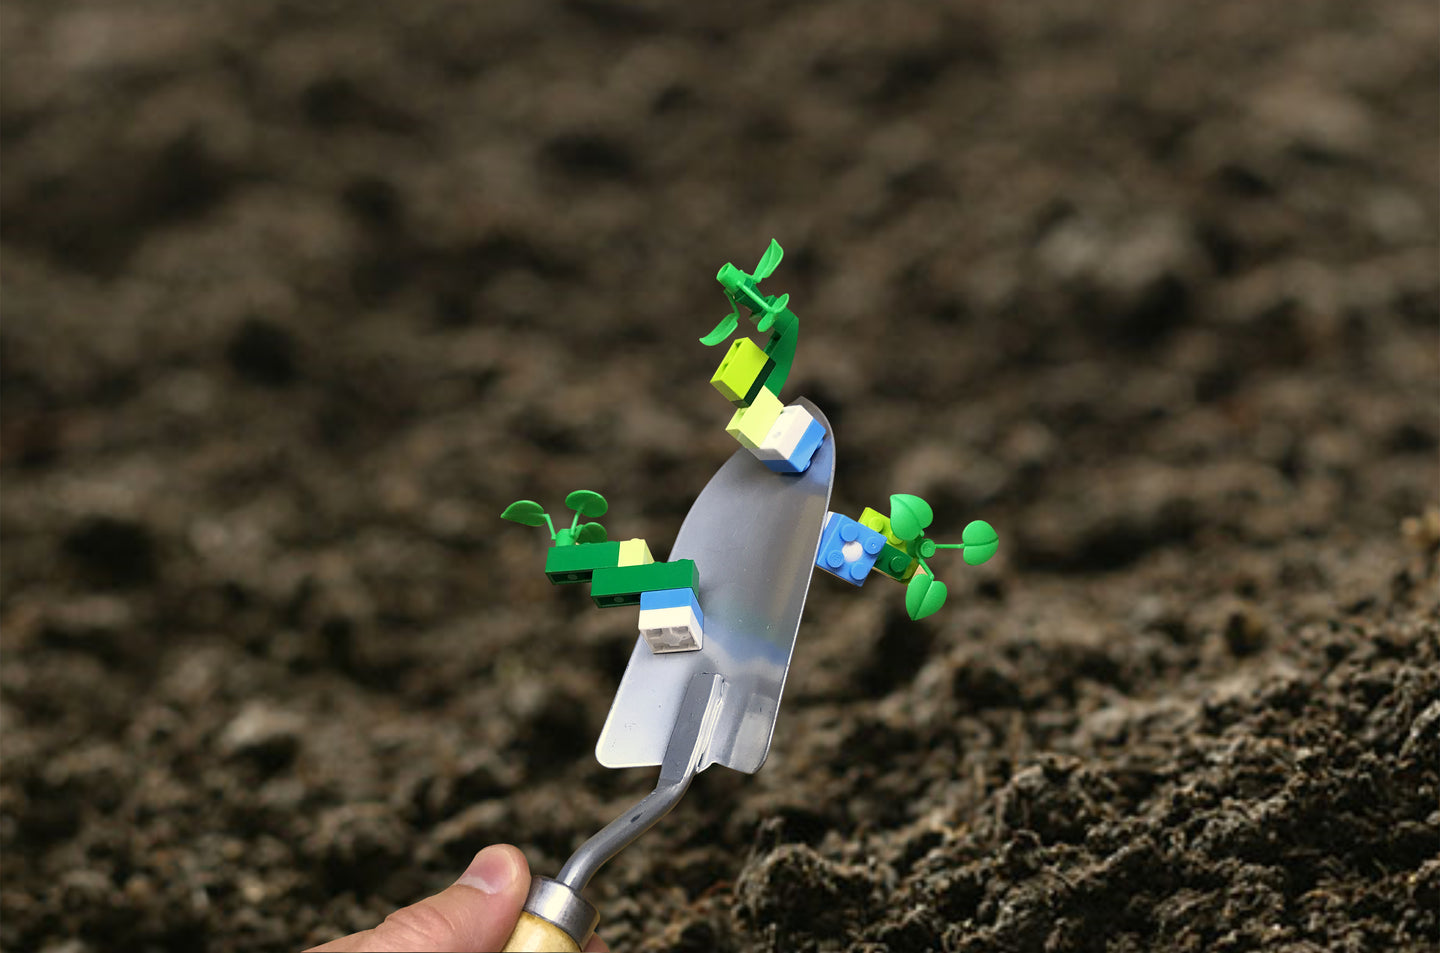 Three Mbrik plus LEGO creations are magnetically attached to a garden trowel.